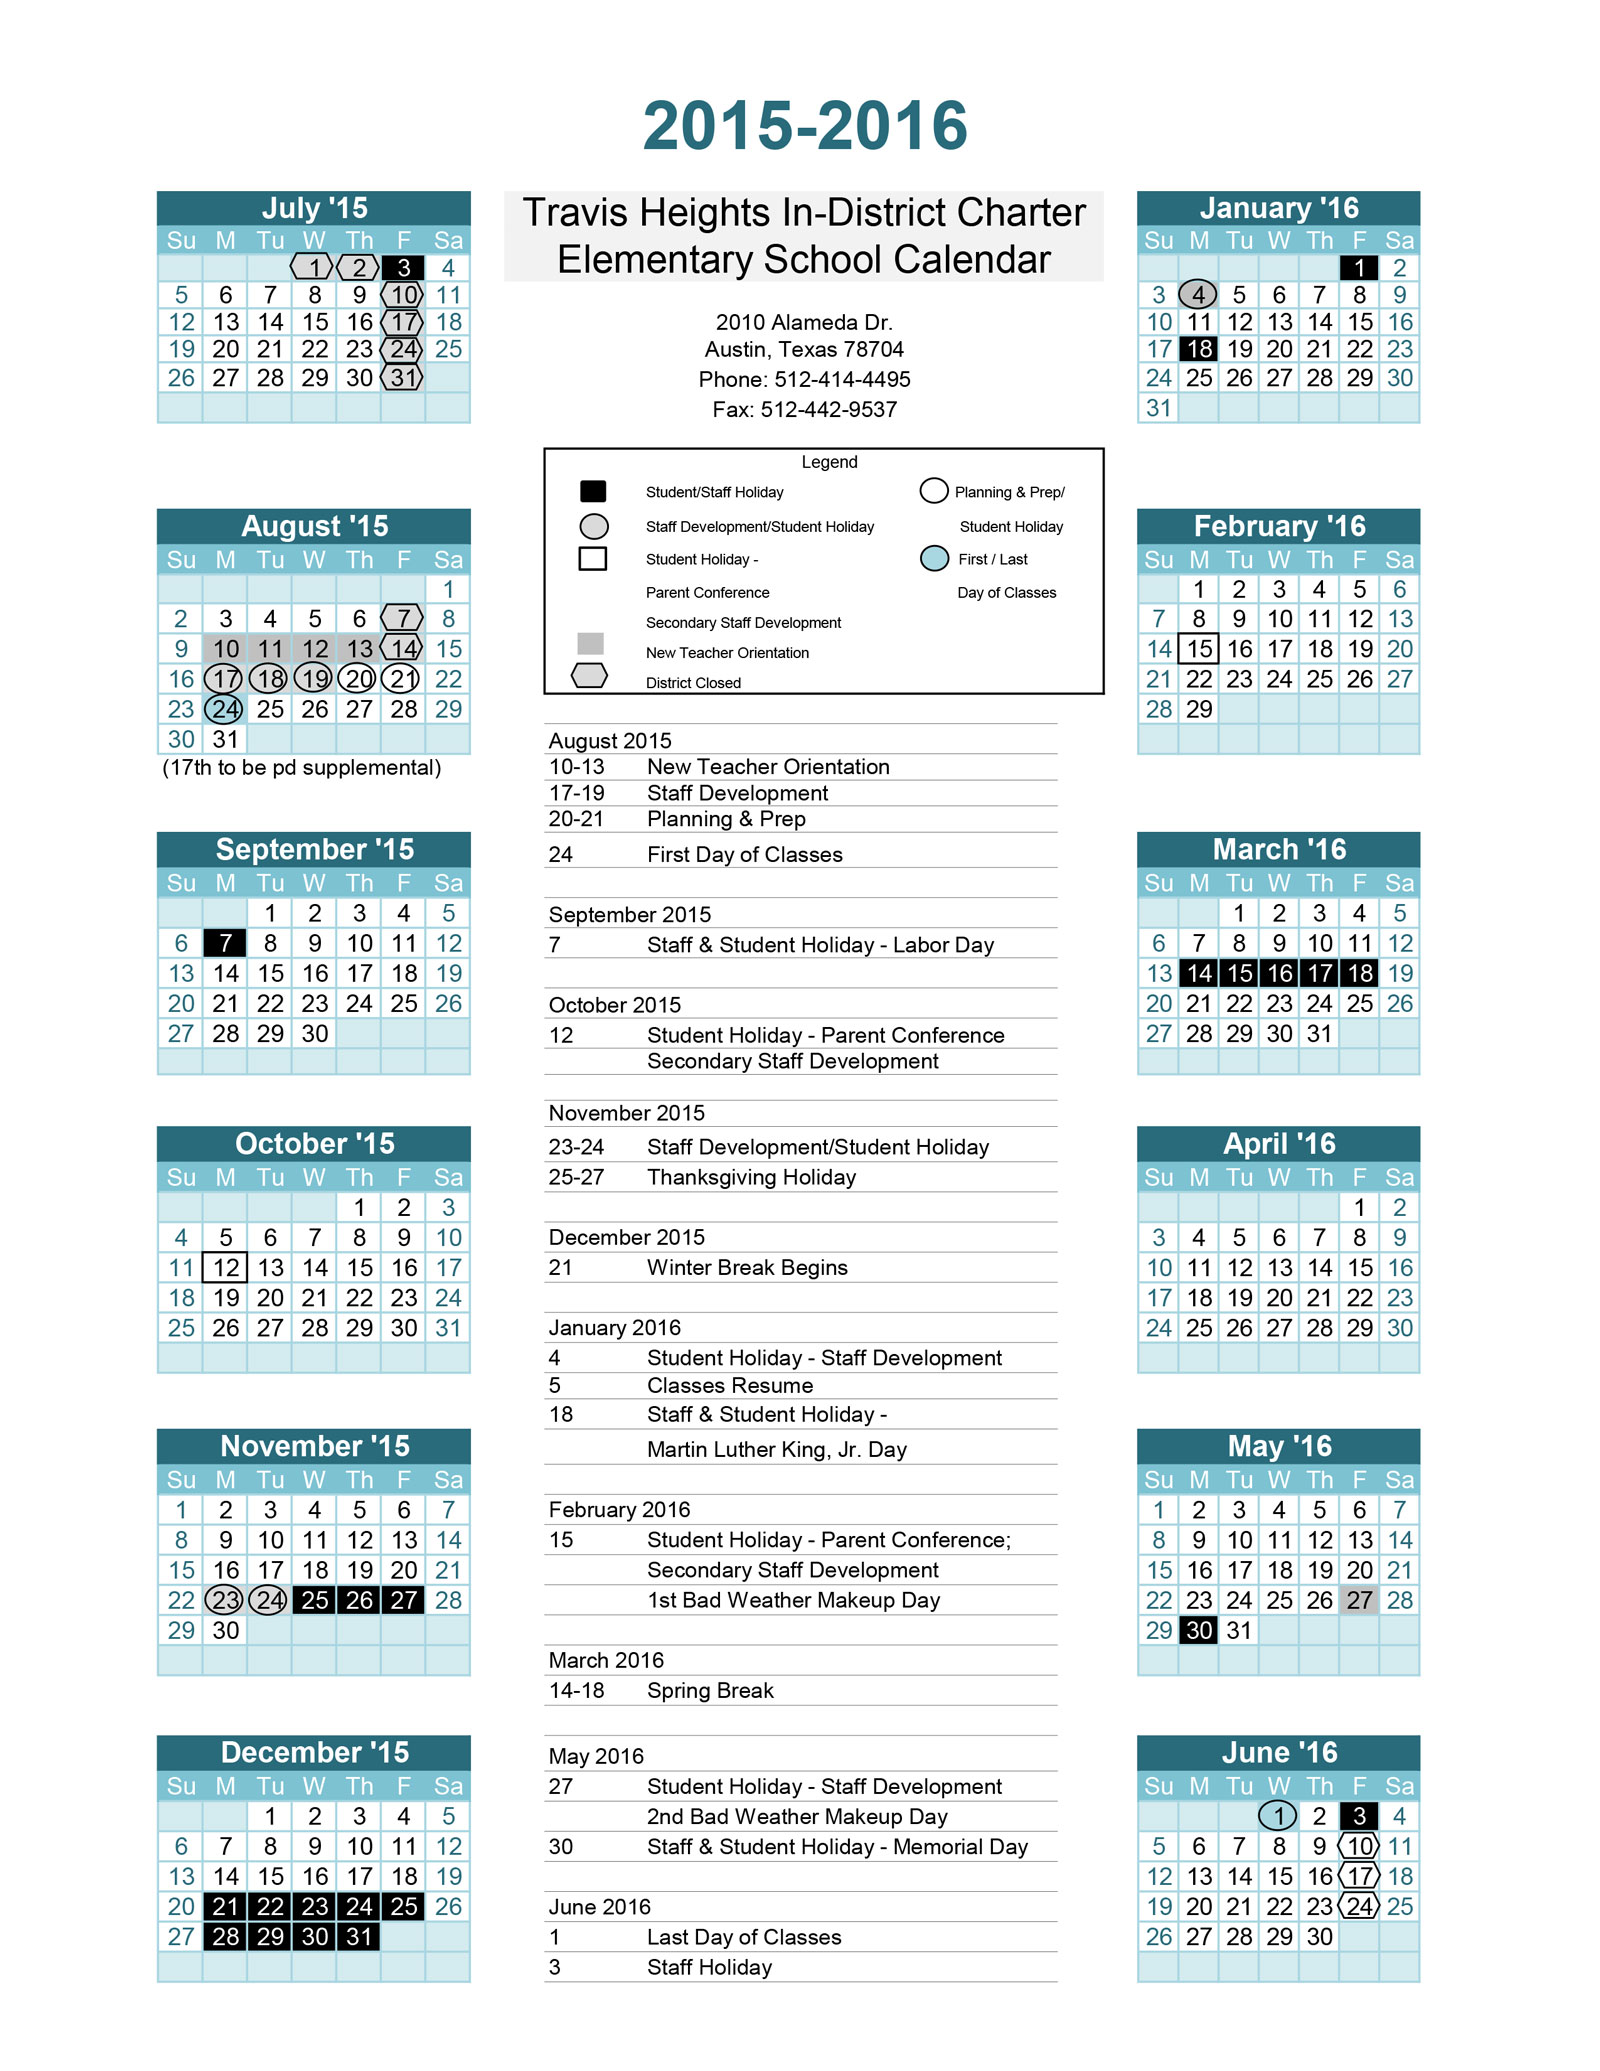 2015-16-School-calendar-Travis-Heights-ES